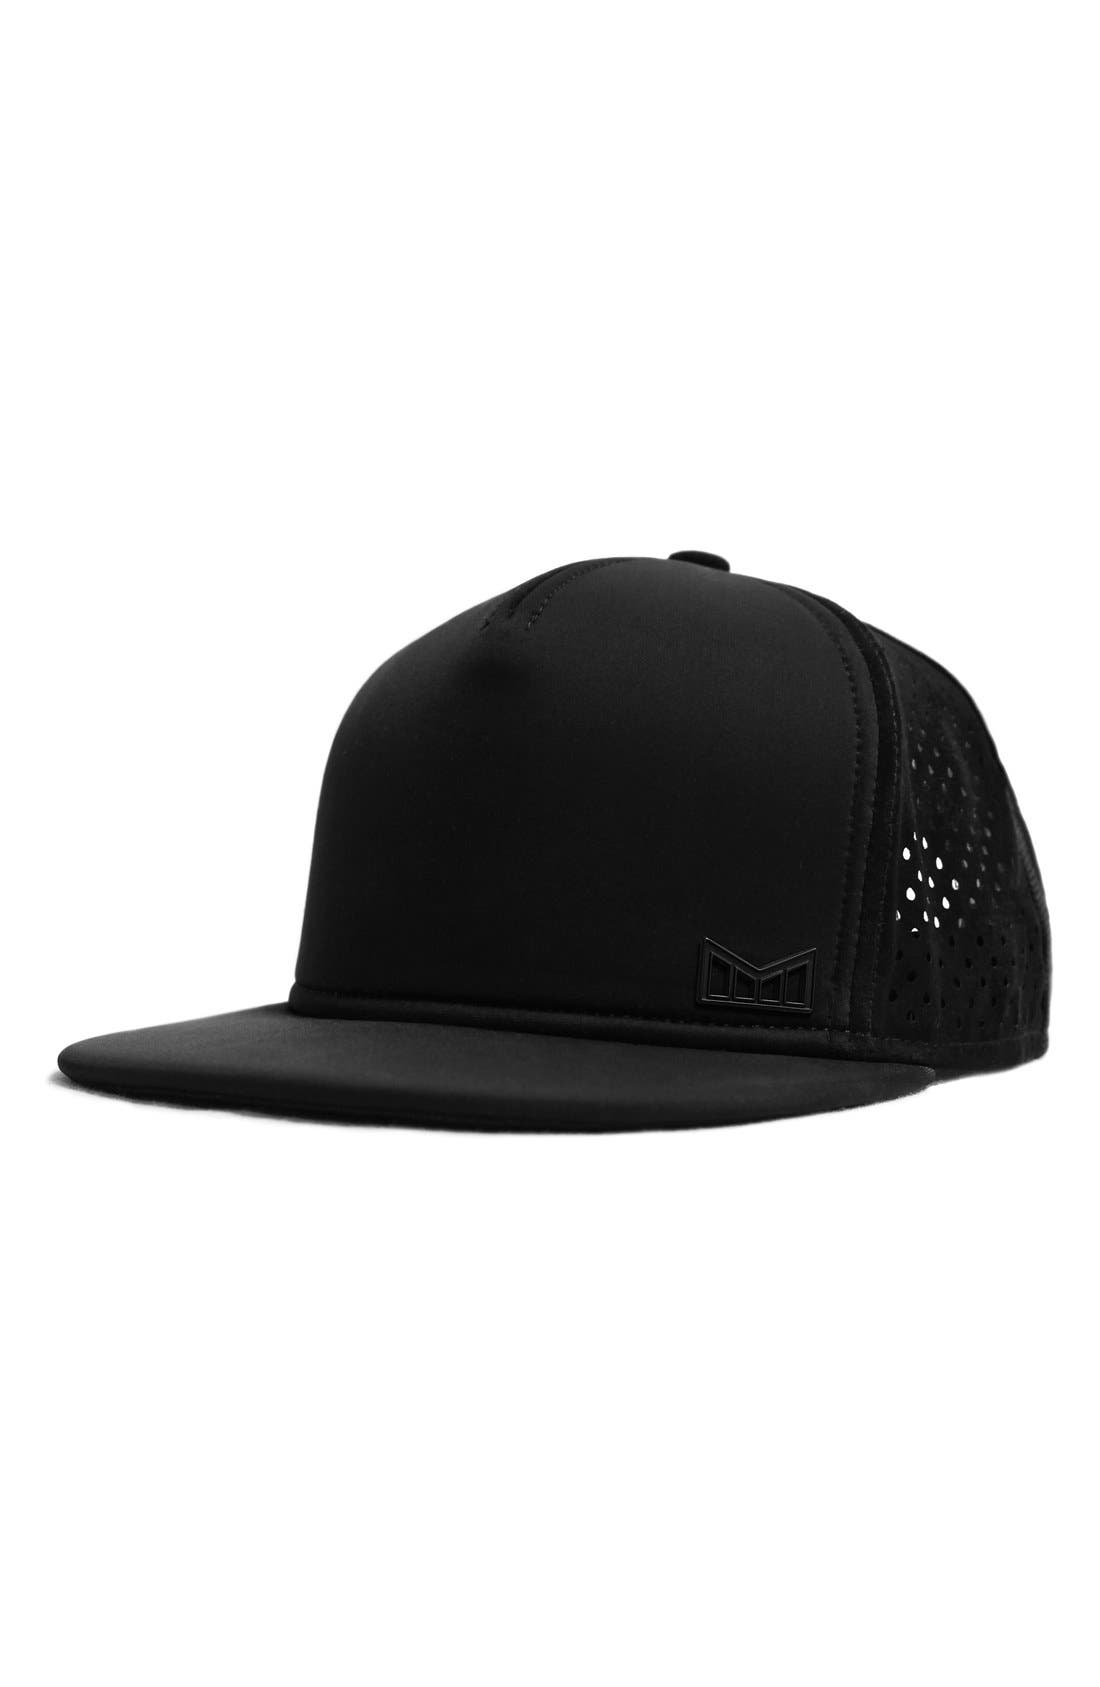 Melin 'The Sharpshooter' Snapback Baseball Cap